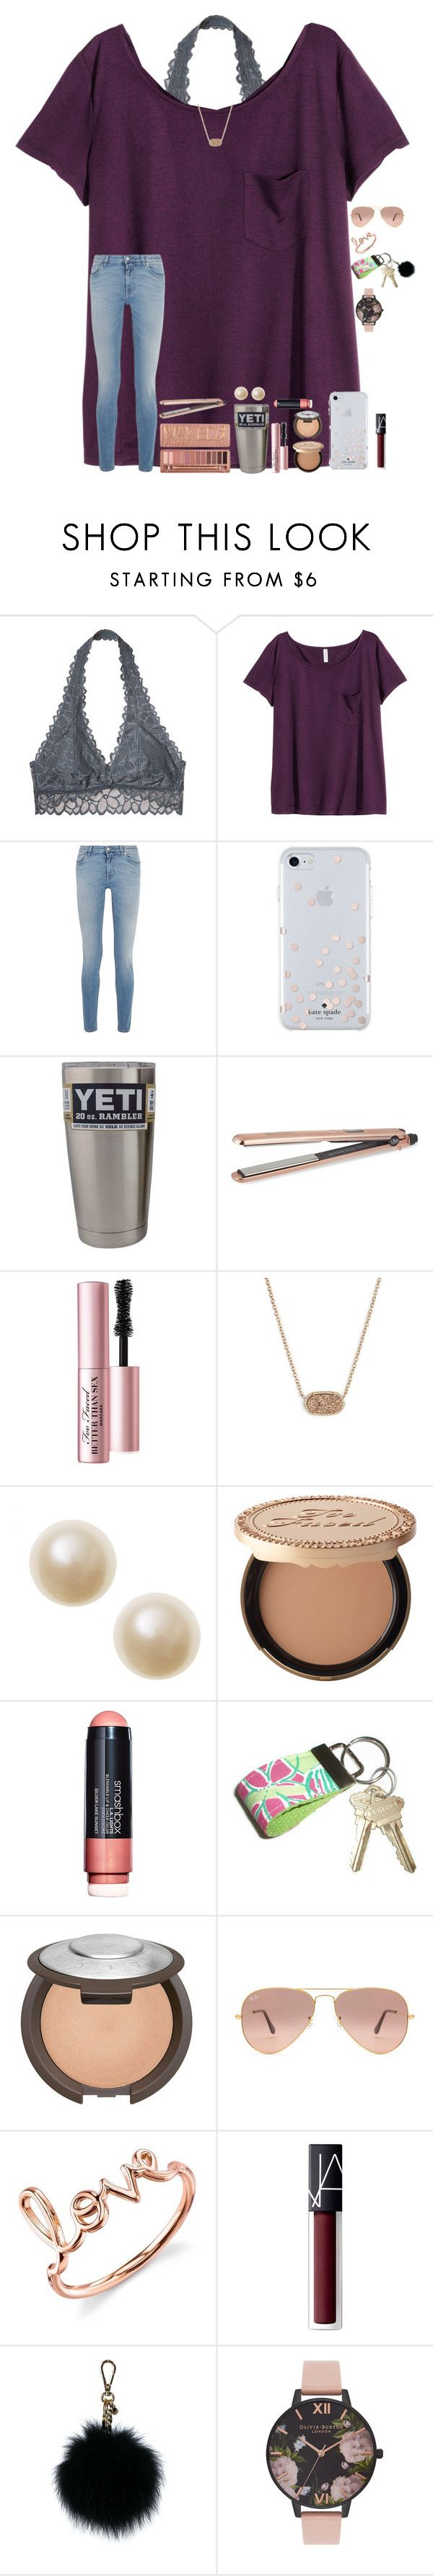 """""""In Nashville"""" by taylor-austinxoxo ❤ liked on Polyvore featuring Victoria's Secret, H&M, Givenchy, Kate Spade, DIVA, Too Faced Cosmetics, Kendra Scott, Urban Decay, Smashbox and Lilly Pulitzer"""